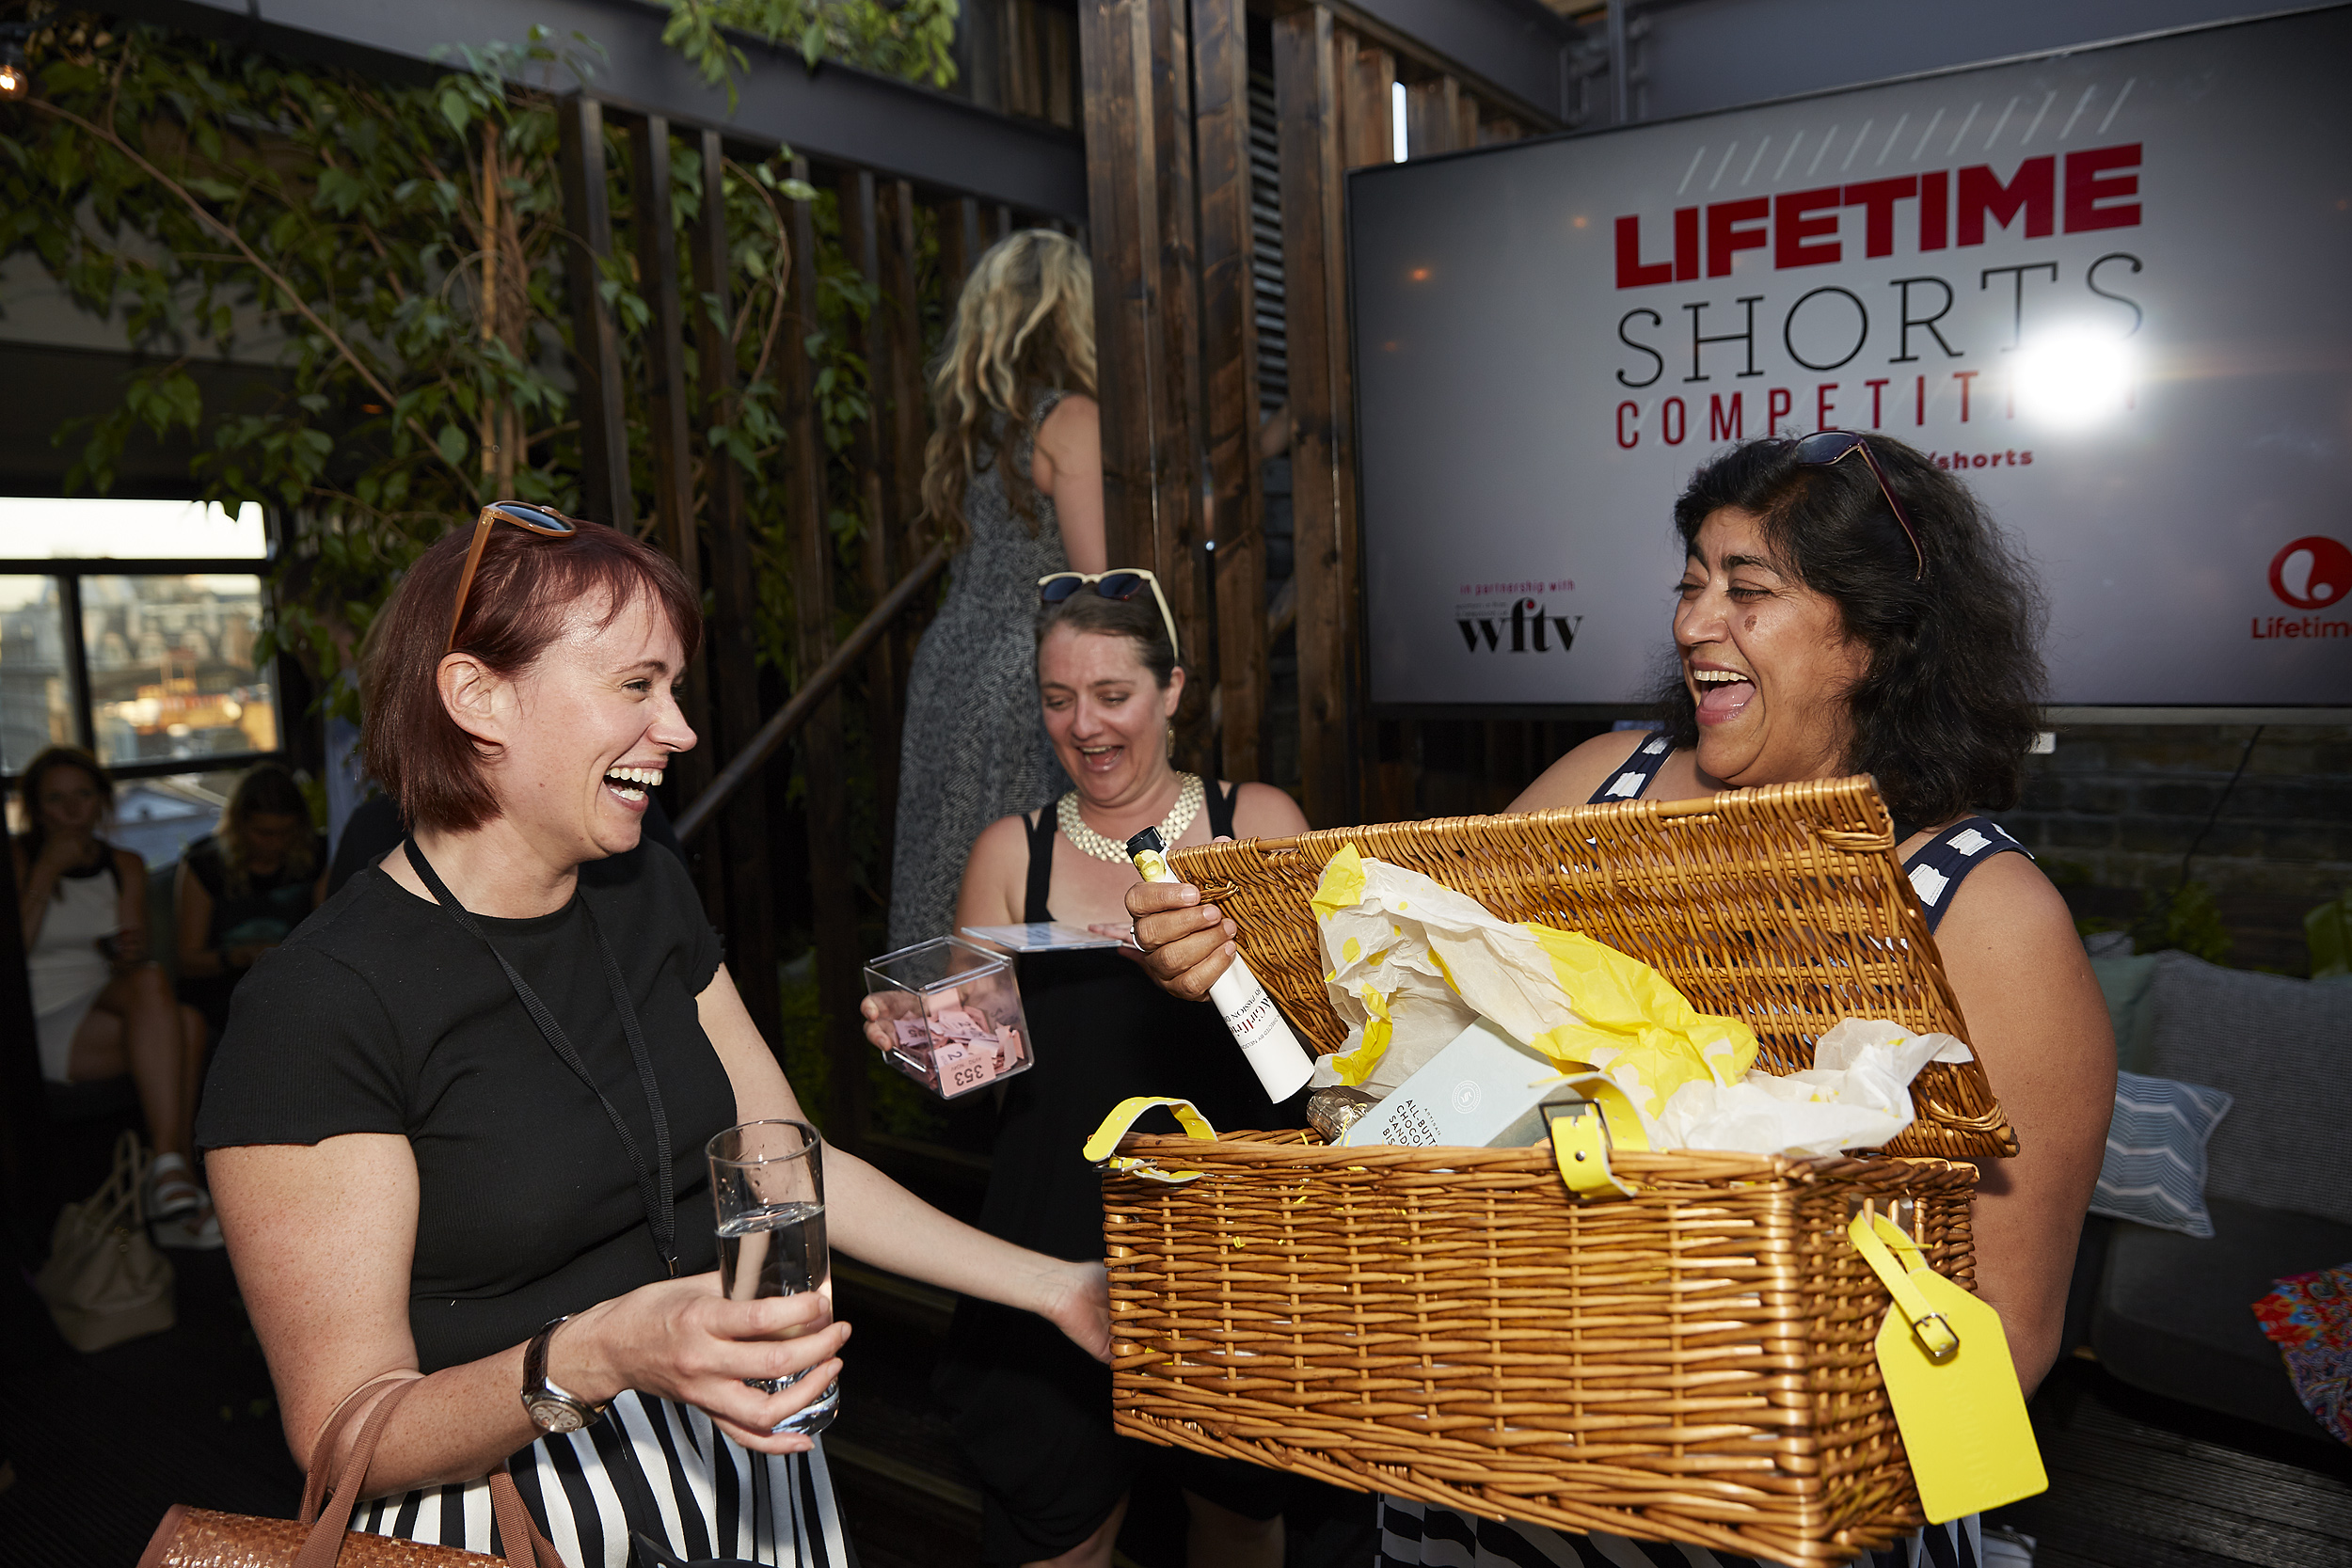 lifetime-shorts-competition-event-photographer-london.jpg